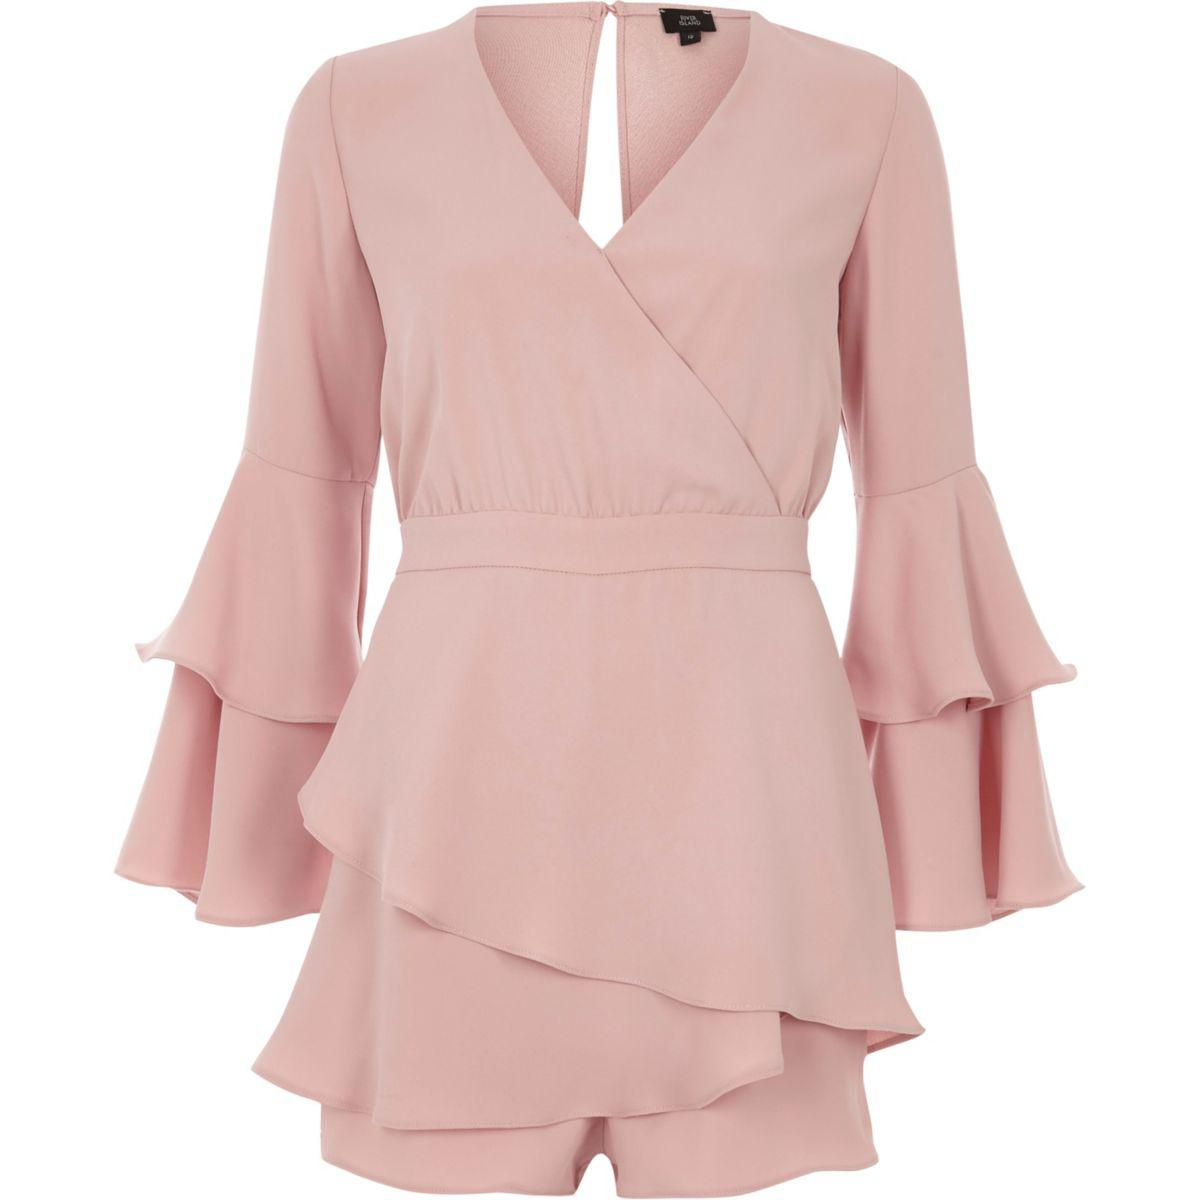 7a7dd2c7ca River Island Light Pink Tiered Frill Skort Playsuit Light Pink ...